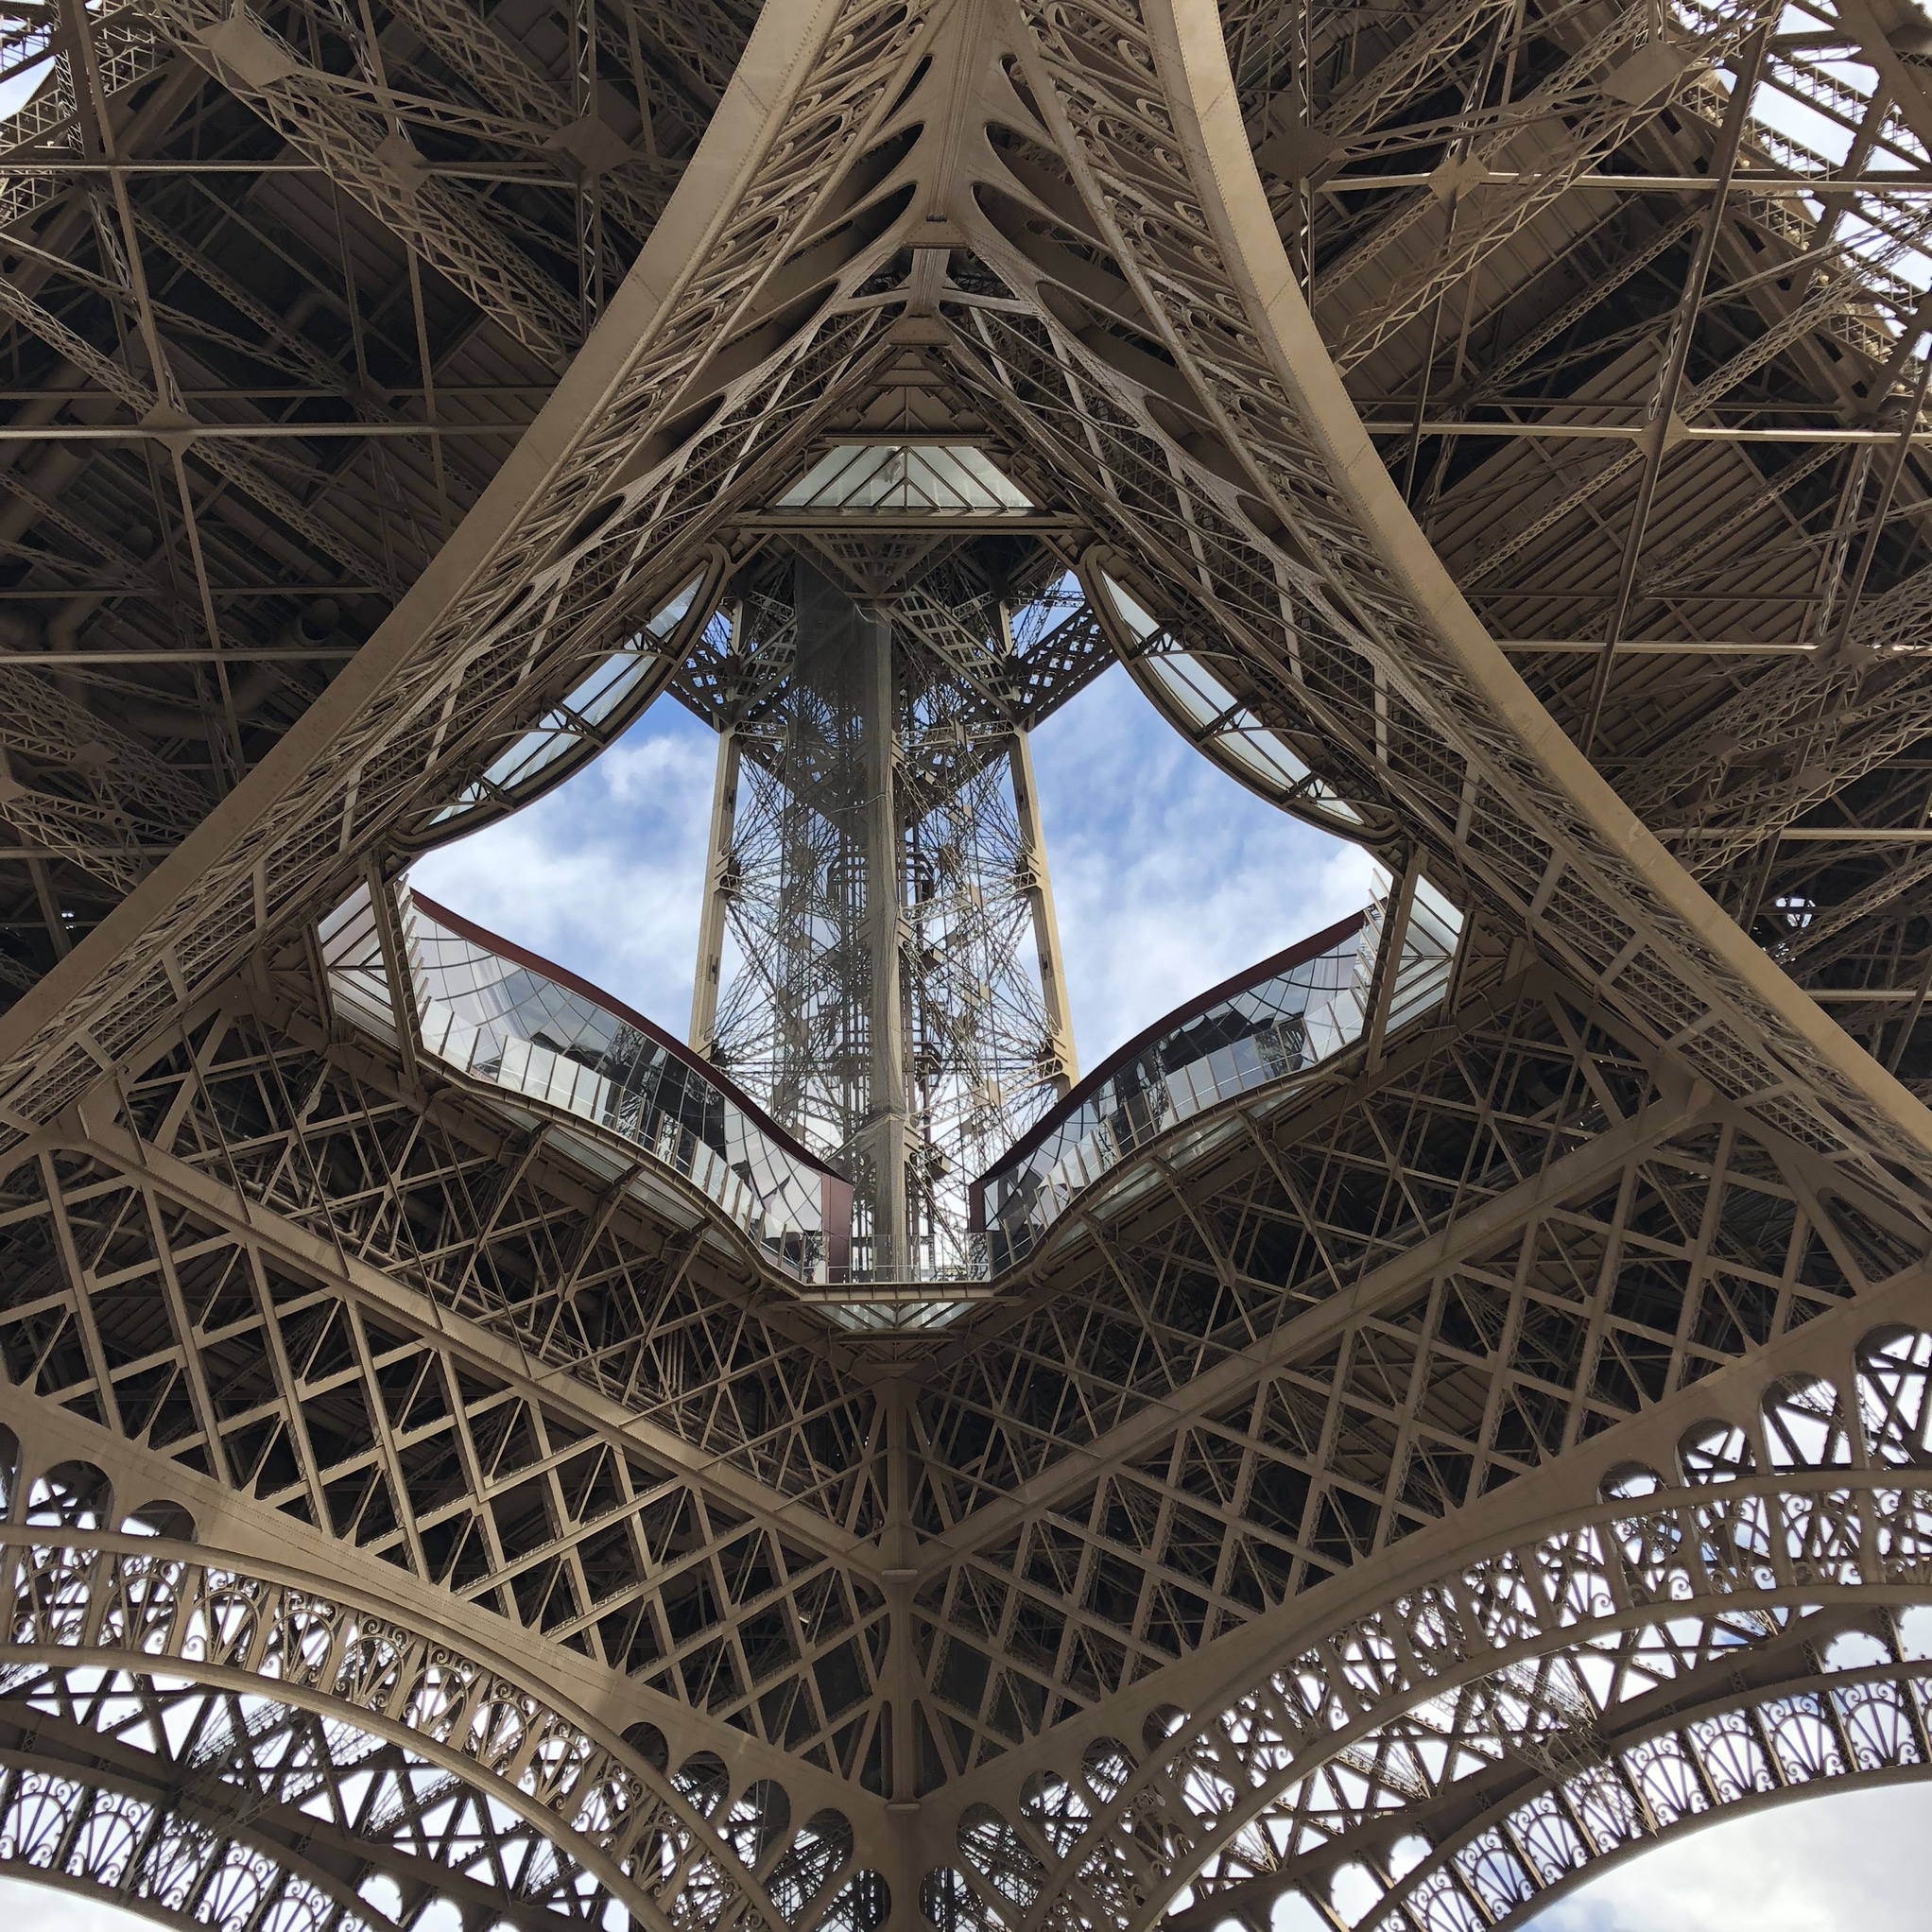 Eiffel Tower from beneath girders